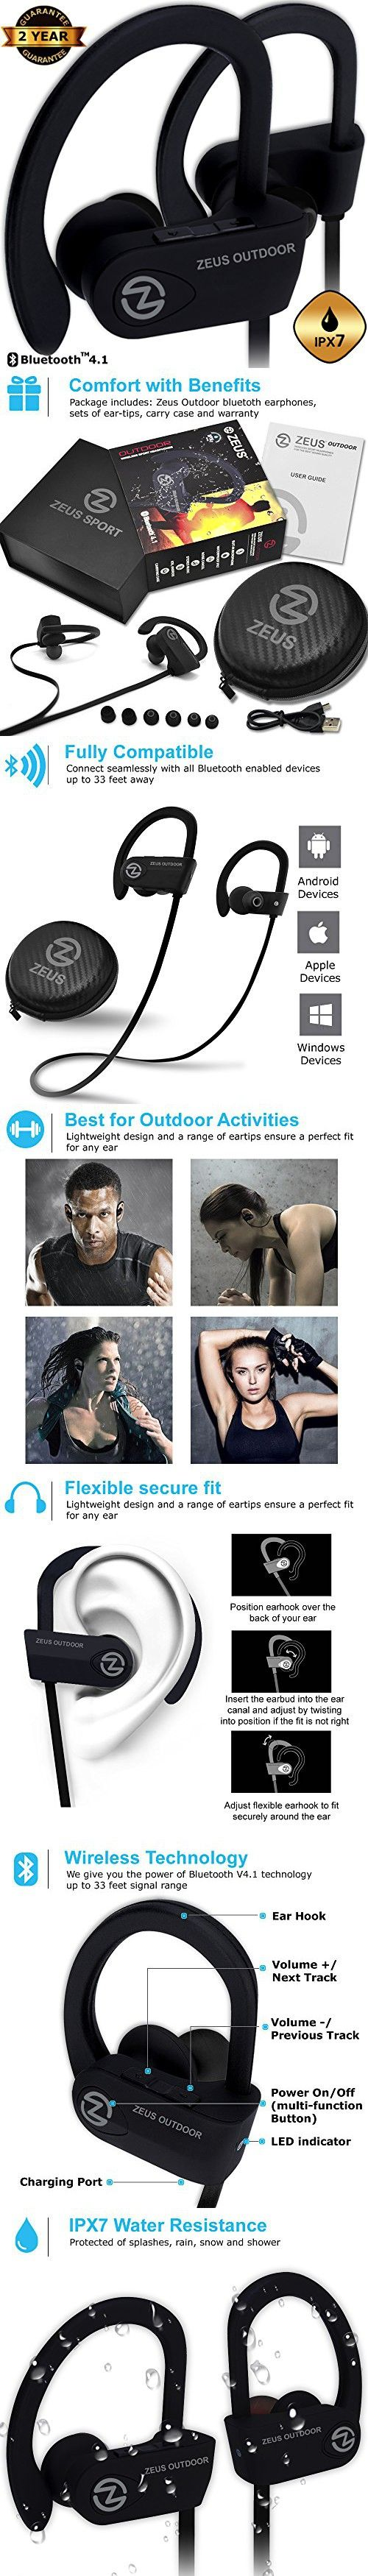 Waterproof Wireless Bluetooth Headphones ZEUS OUTDOOR a HD Sound Best Wireless Earbuds Earphones with Microphone Workout Running Sport Headphones Bluetooth Headset for Gym Best Father Day Gifts Man